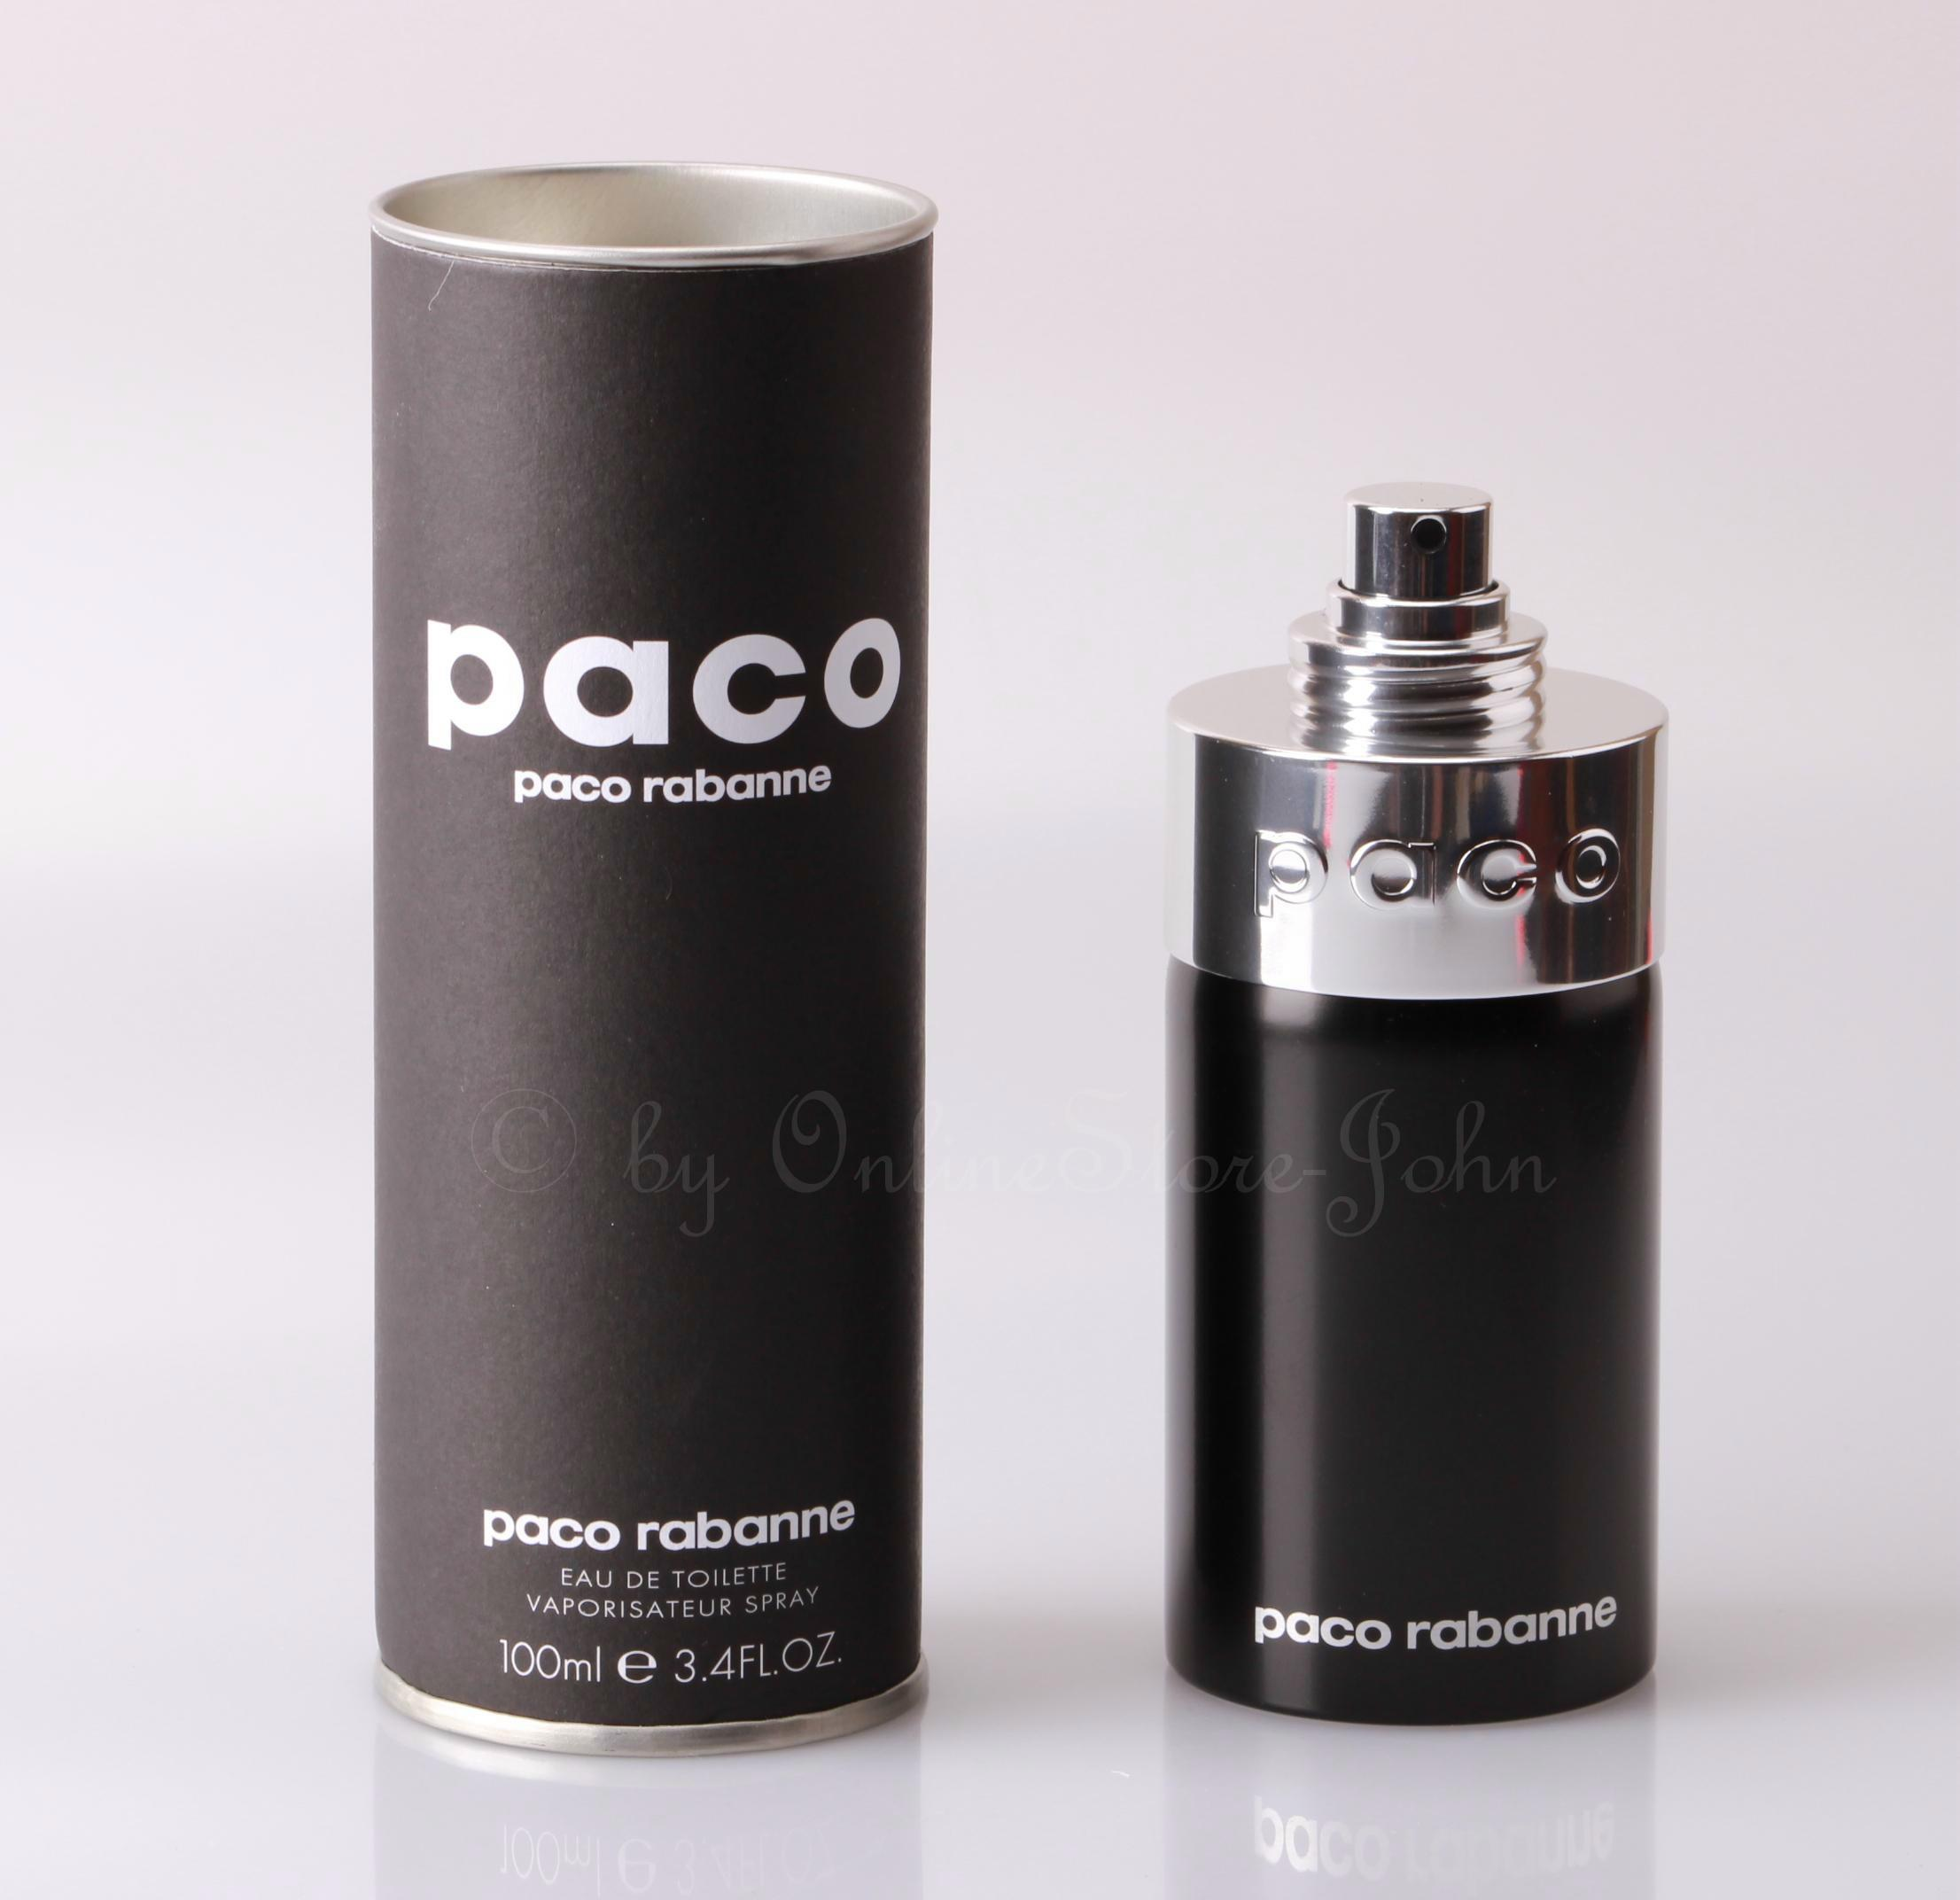 Paco rabanne paco by p r 100ml edt eau de toilette nuovo for Paco by paco rabanne